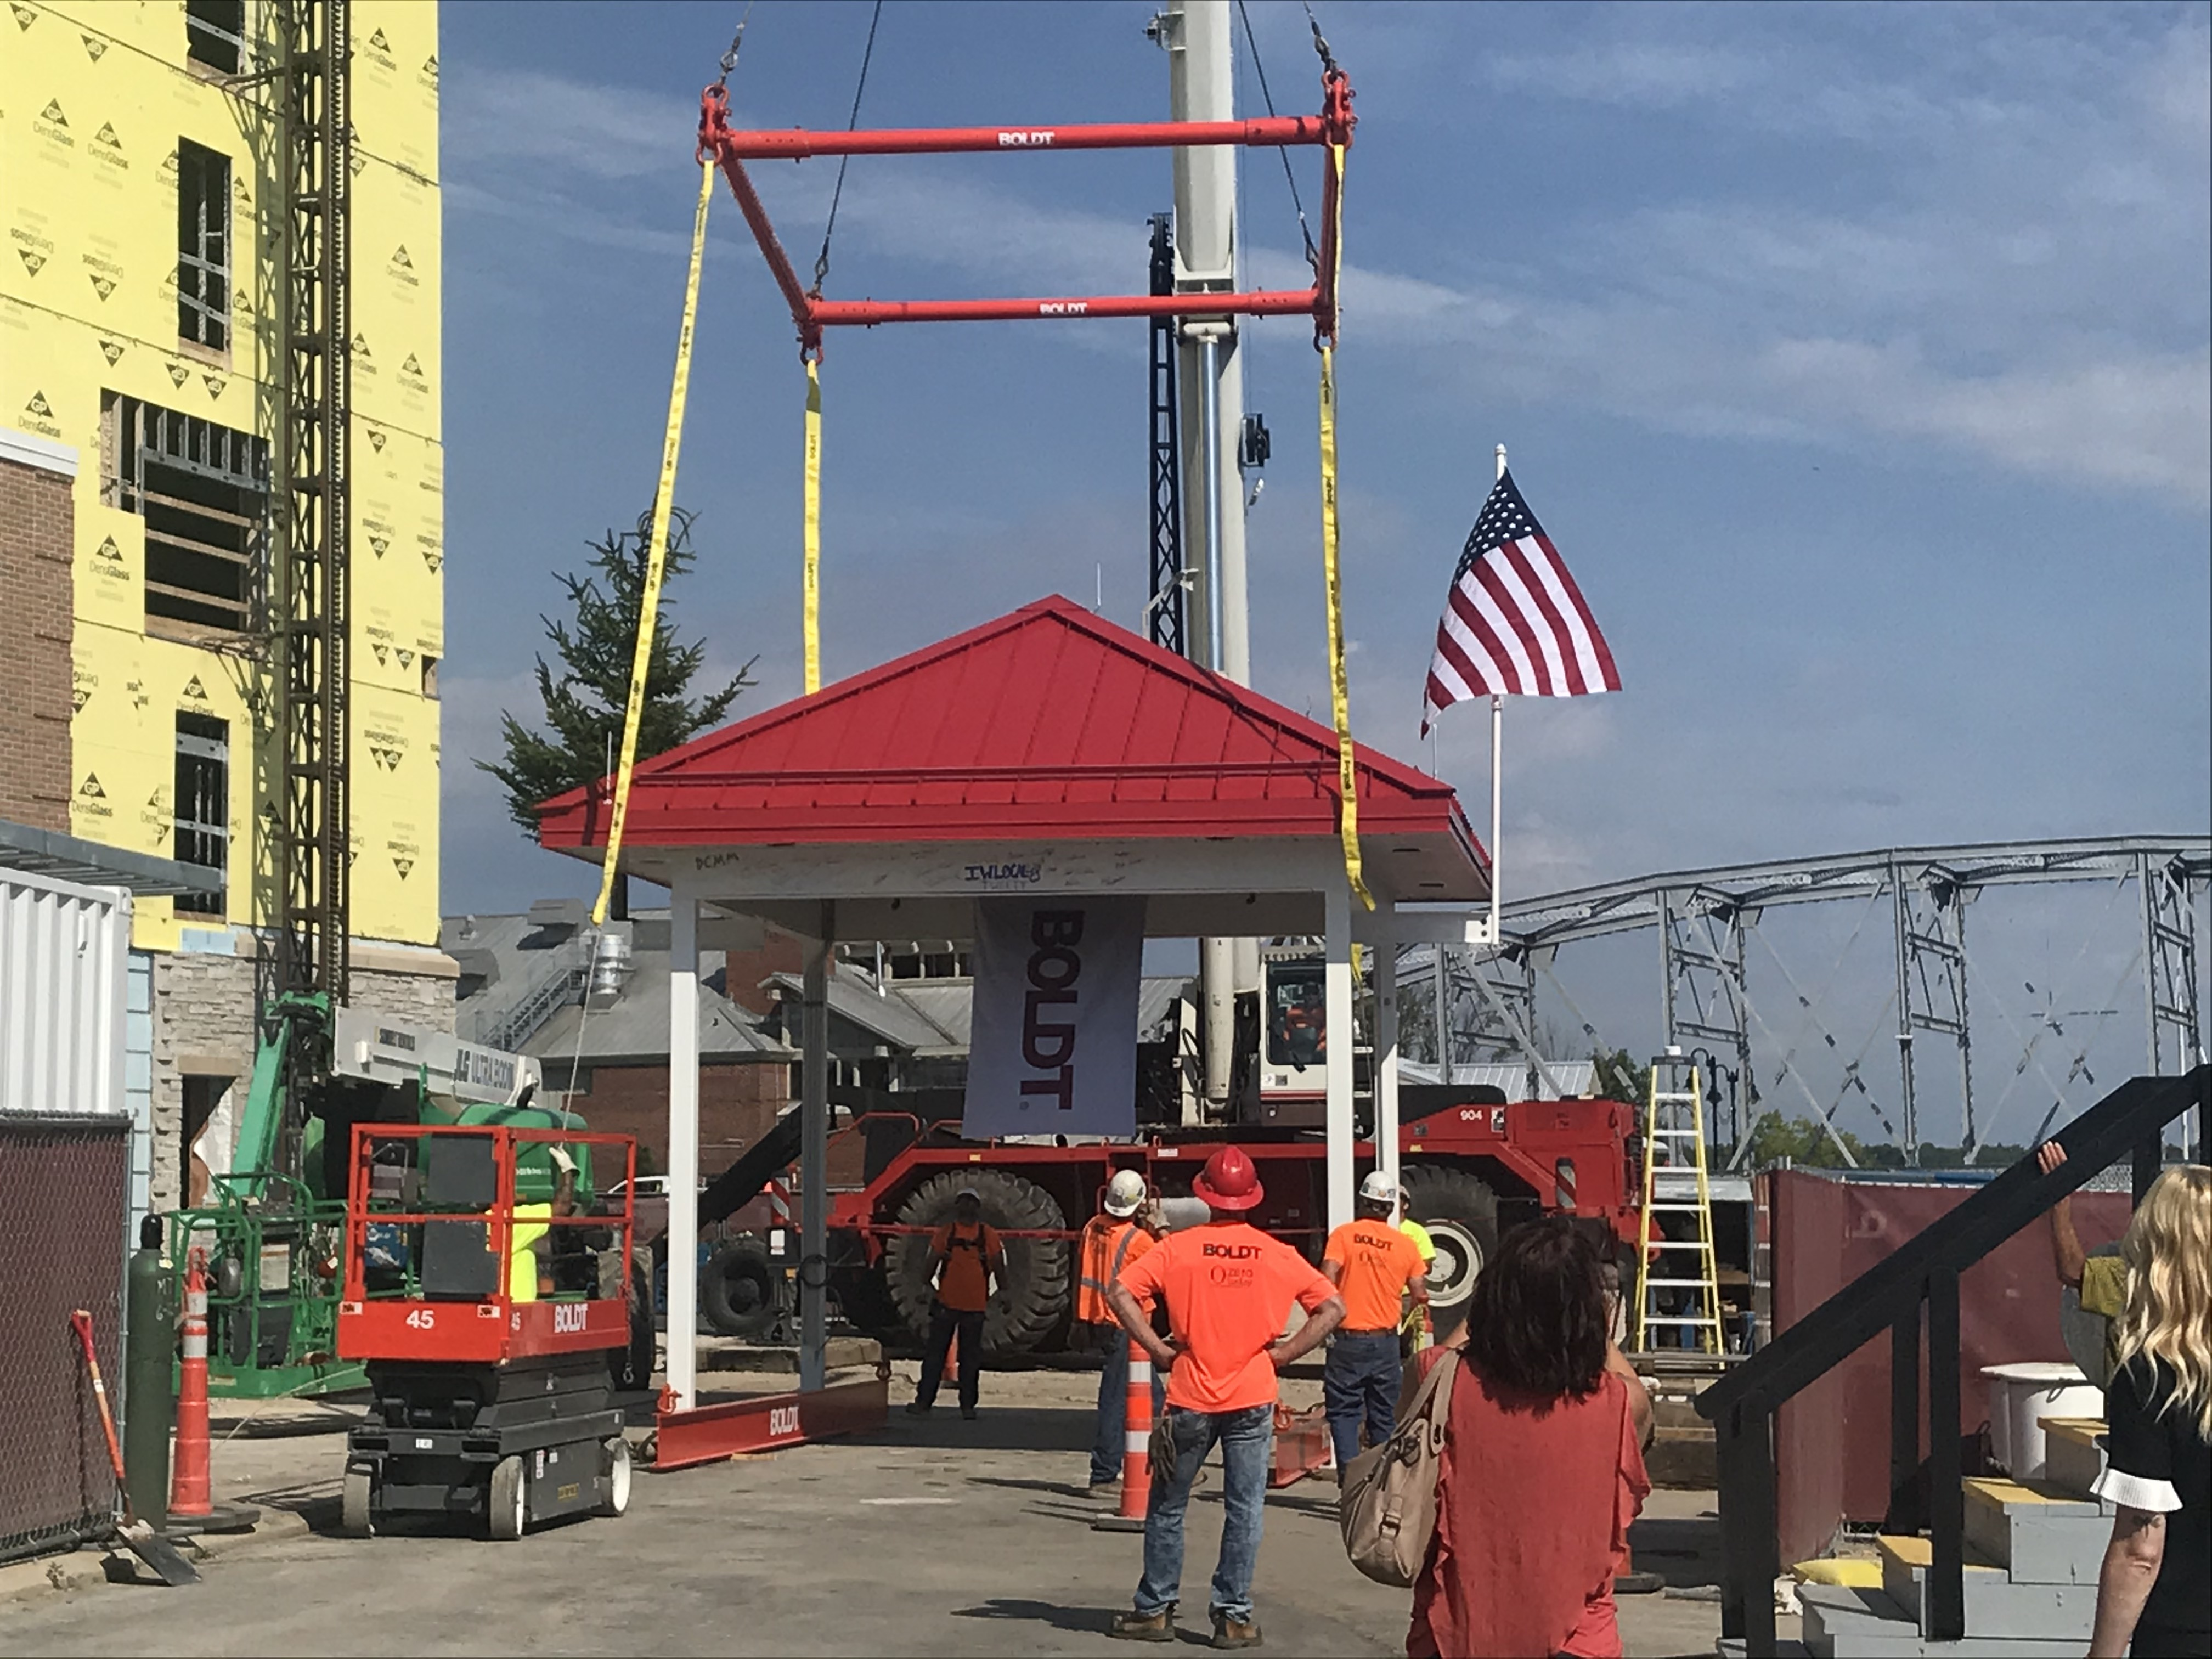 Topping Off event - July 2, 2020